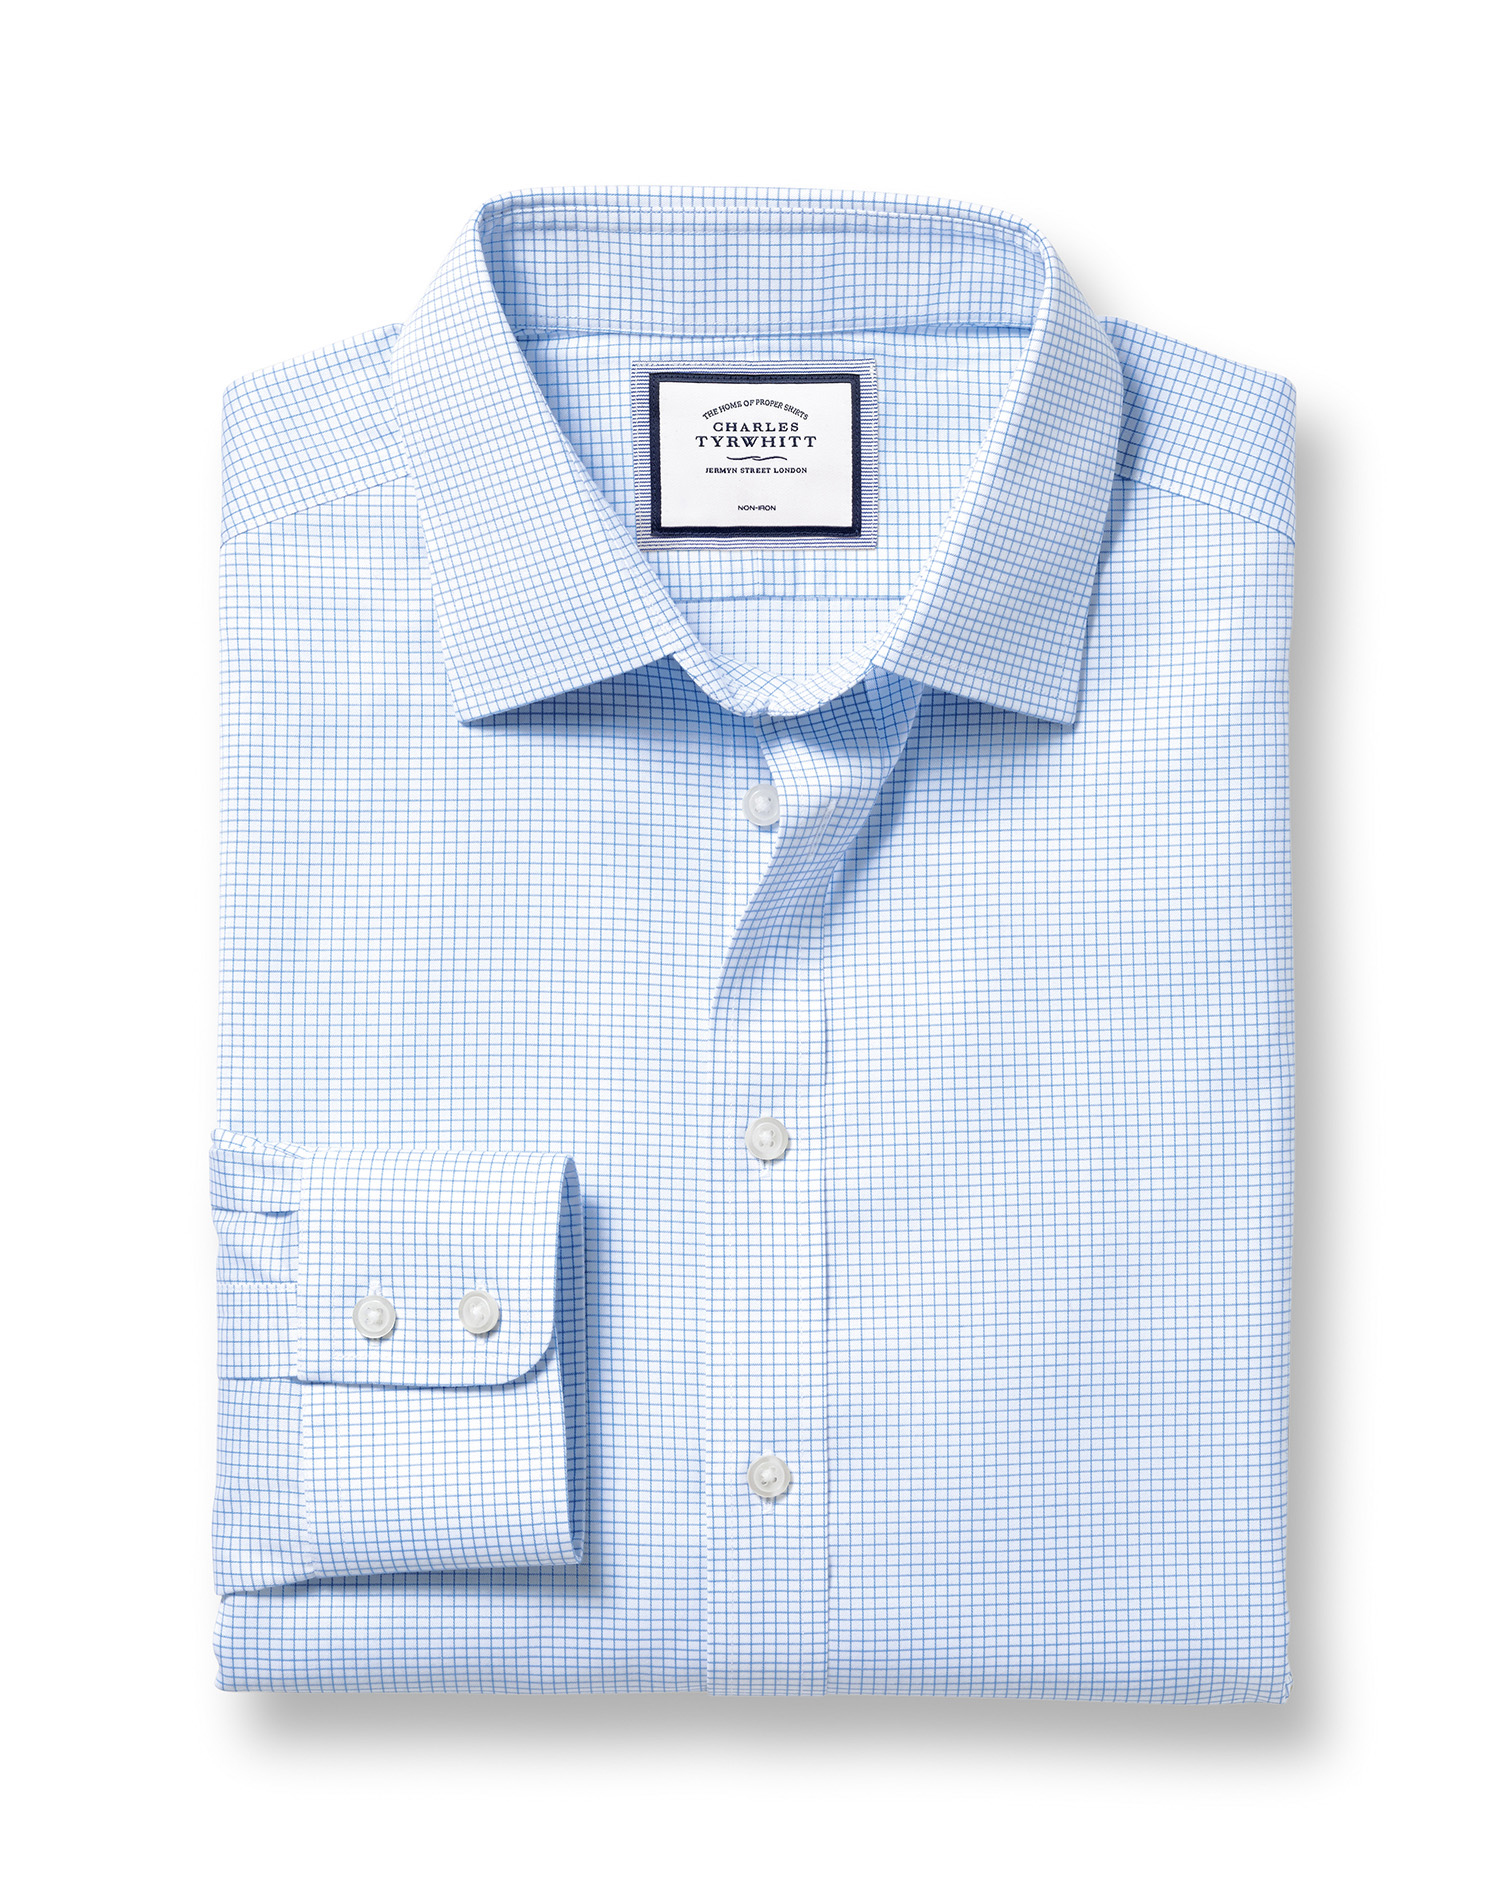 Extra Slim Fit Non-Iron Sky Blue Mini Grid Check Twill Cotton Formal Shirt Single Cuff Size 15.5/36